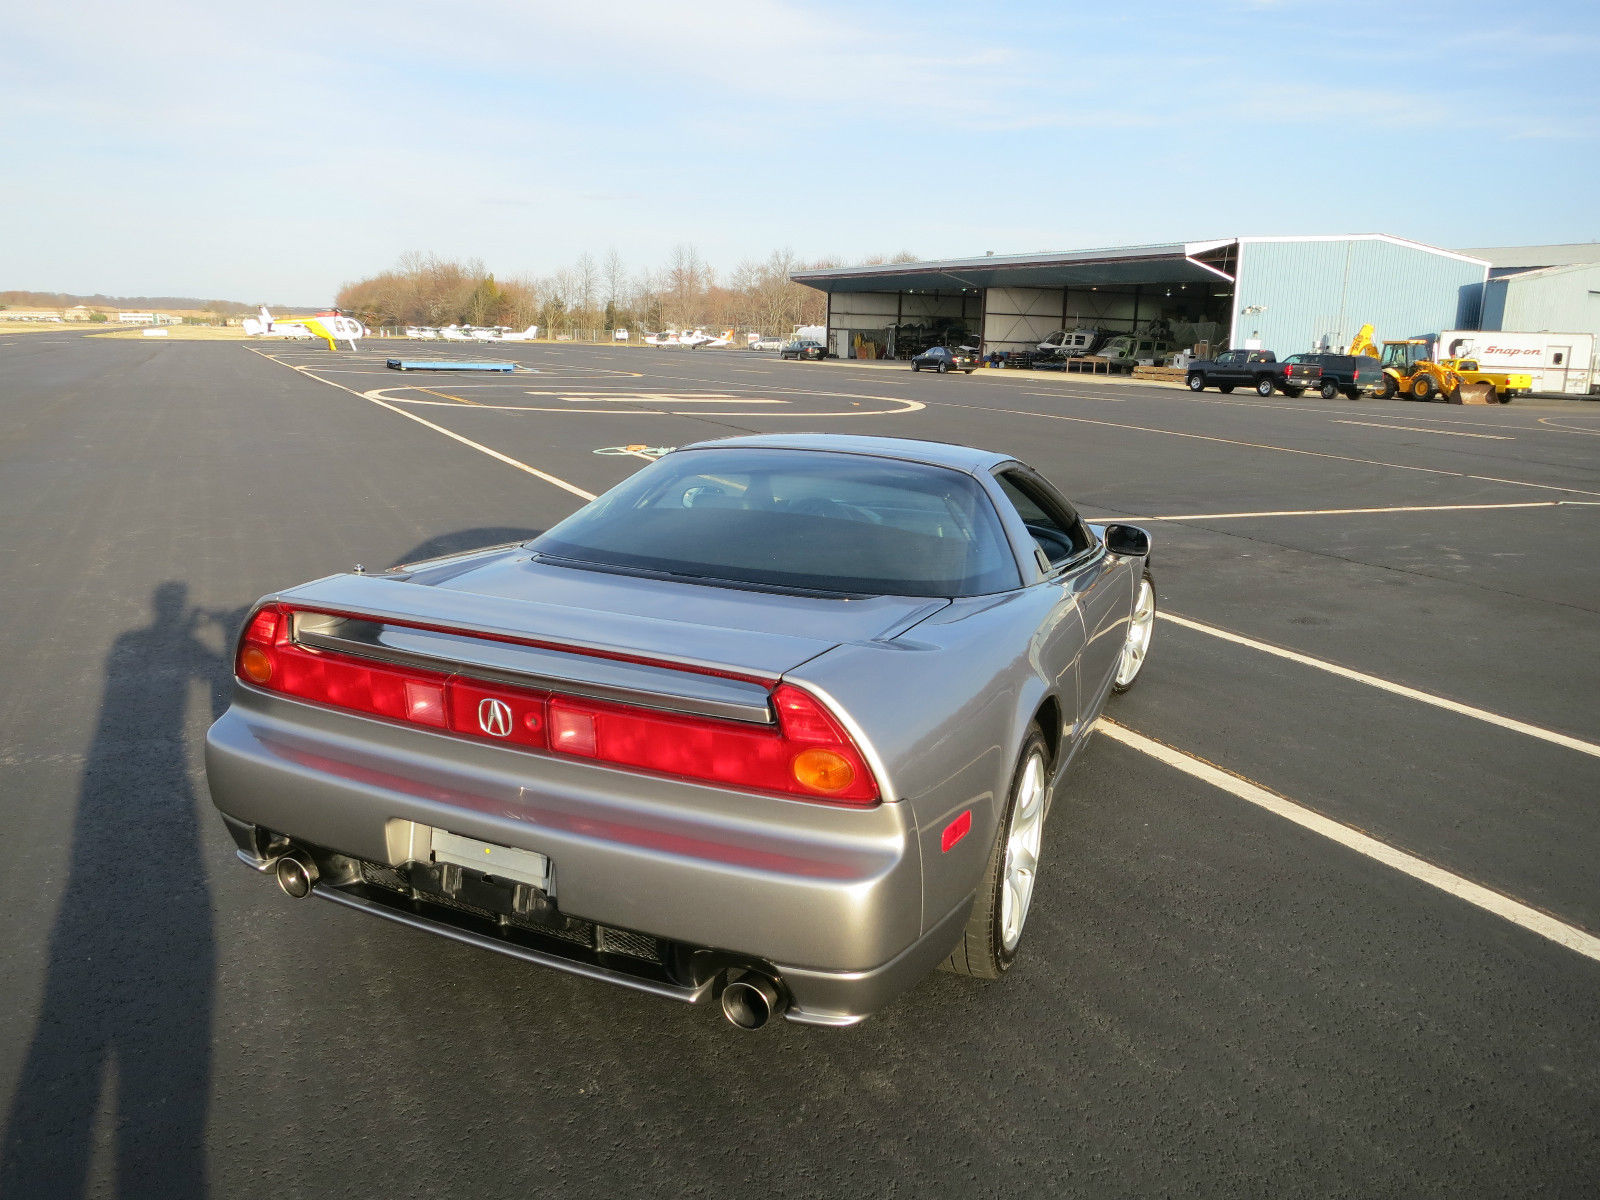 2002 Acura NSX Targa With Only 7,500 Miles for Sale on eBay ...